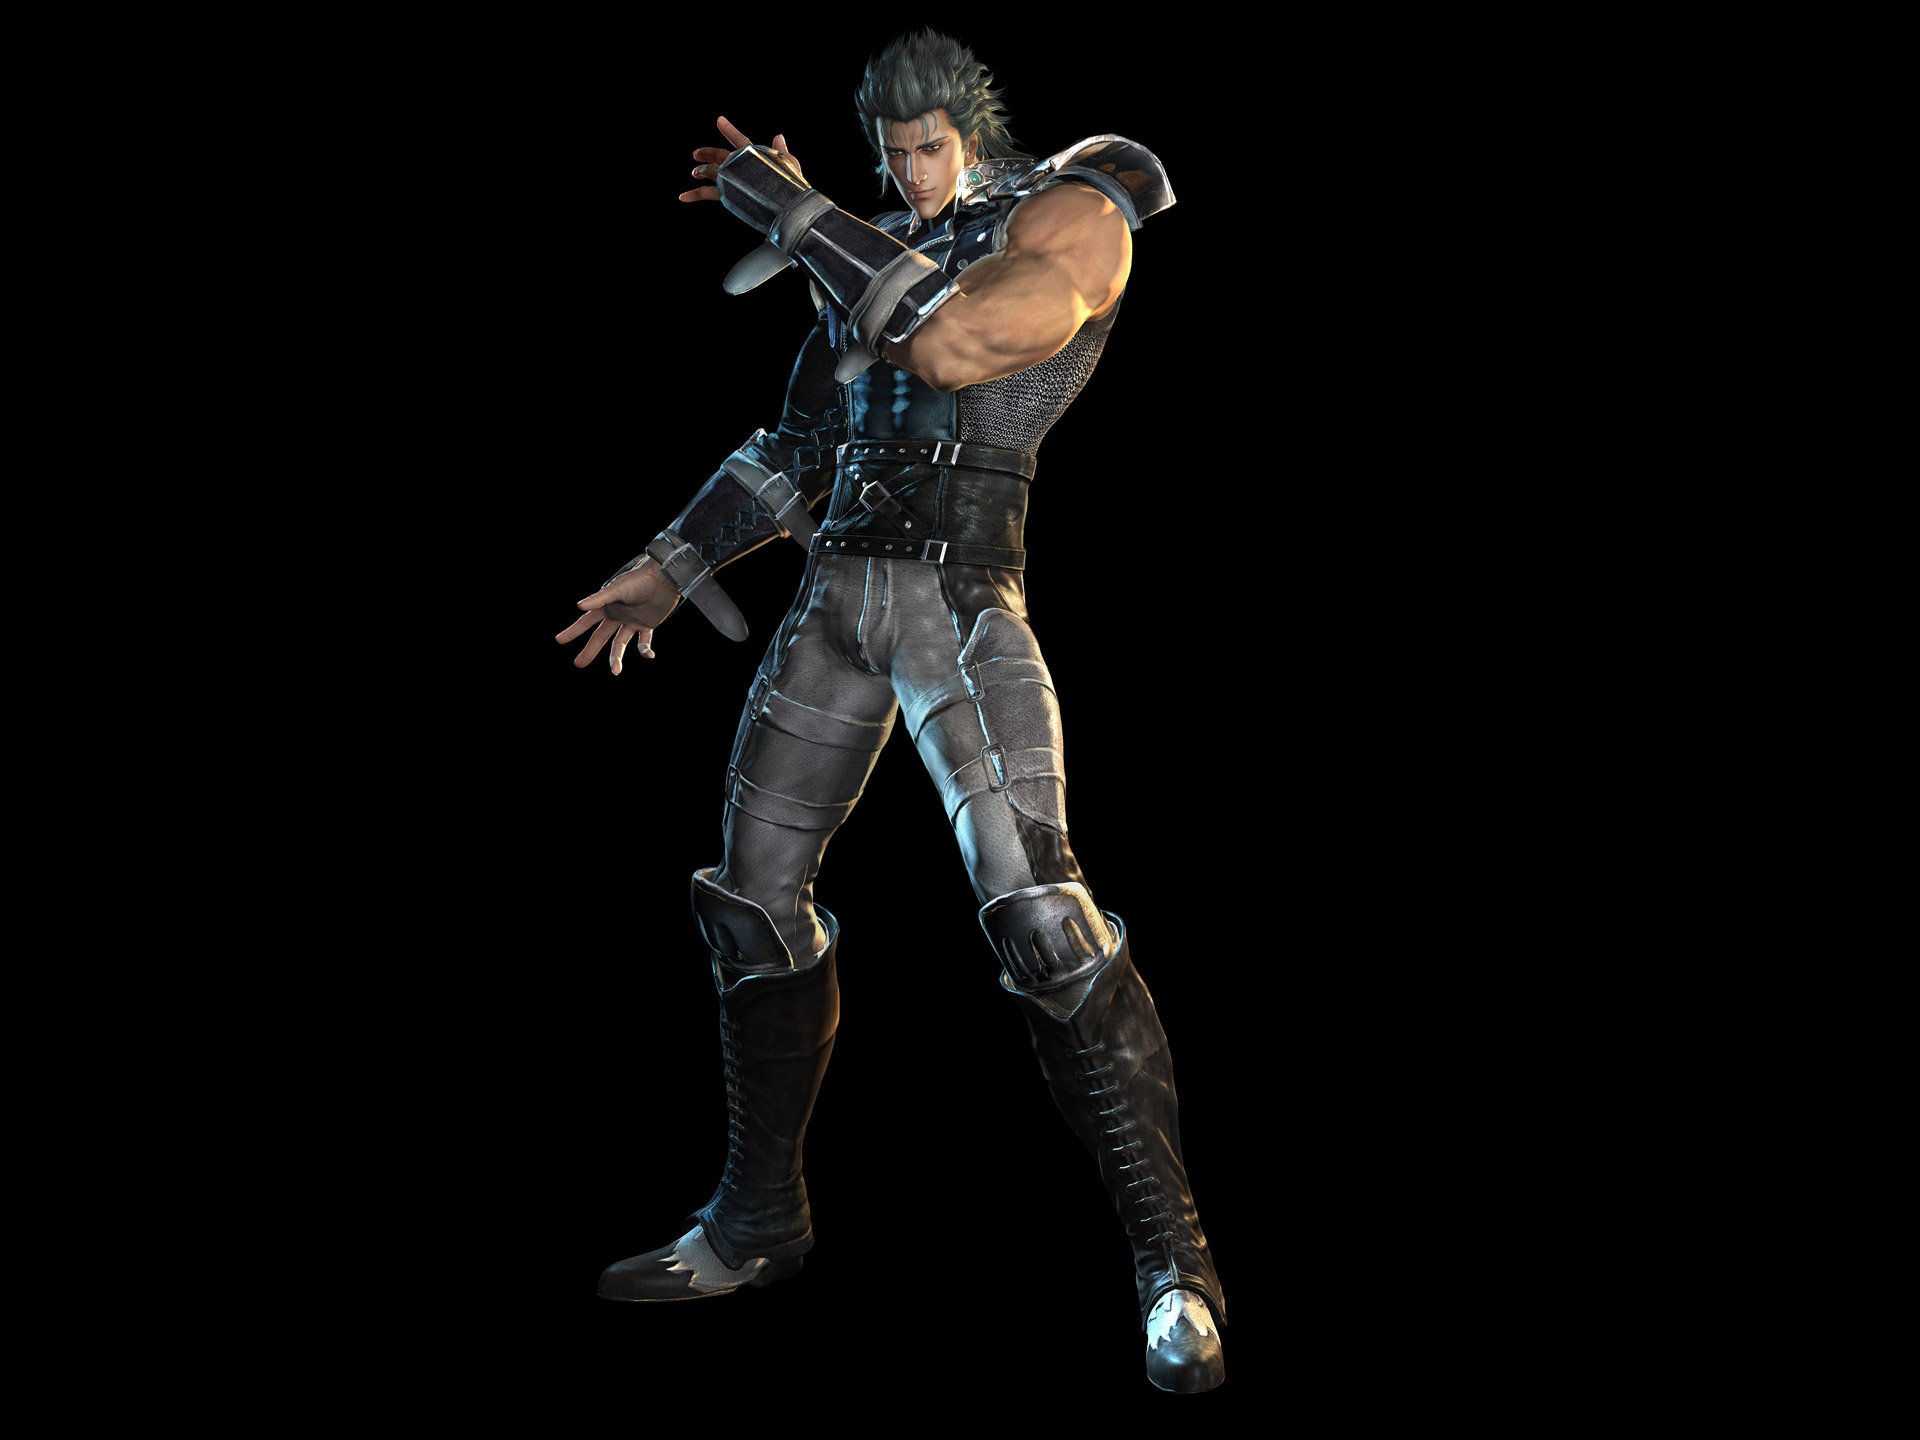 Fist of the North Star video game wallpapers Wallpaper 231 of 246 1920x1440